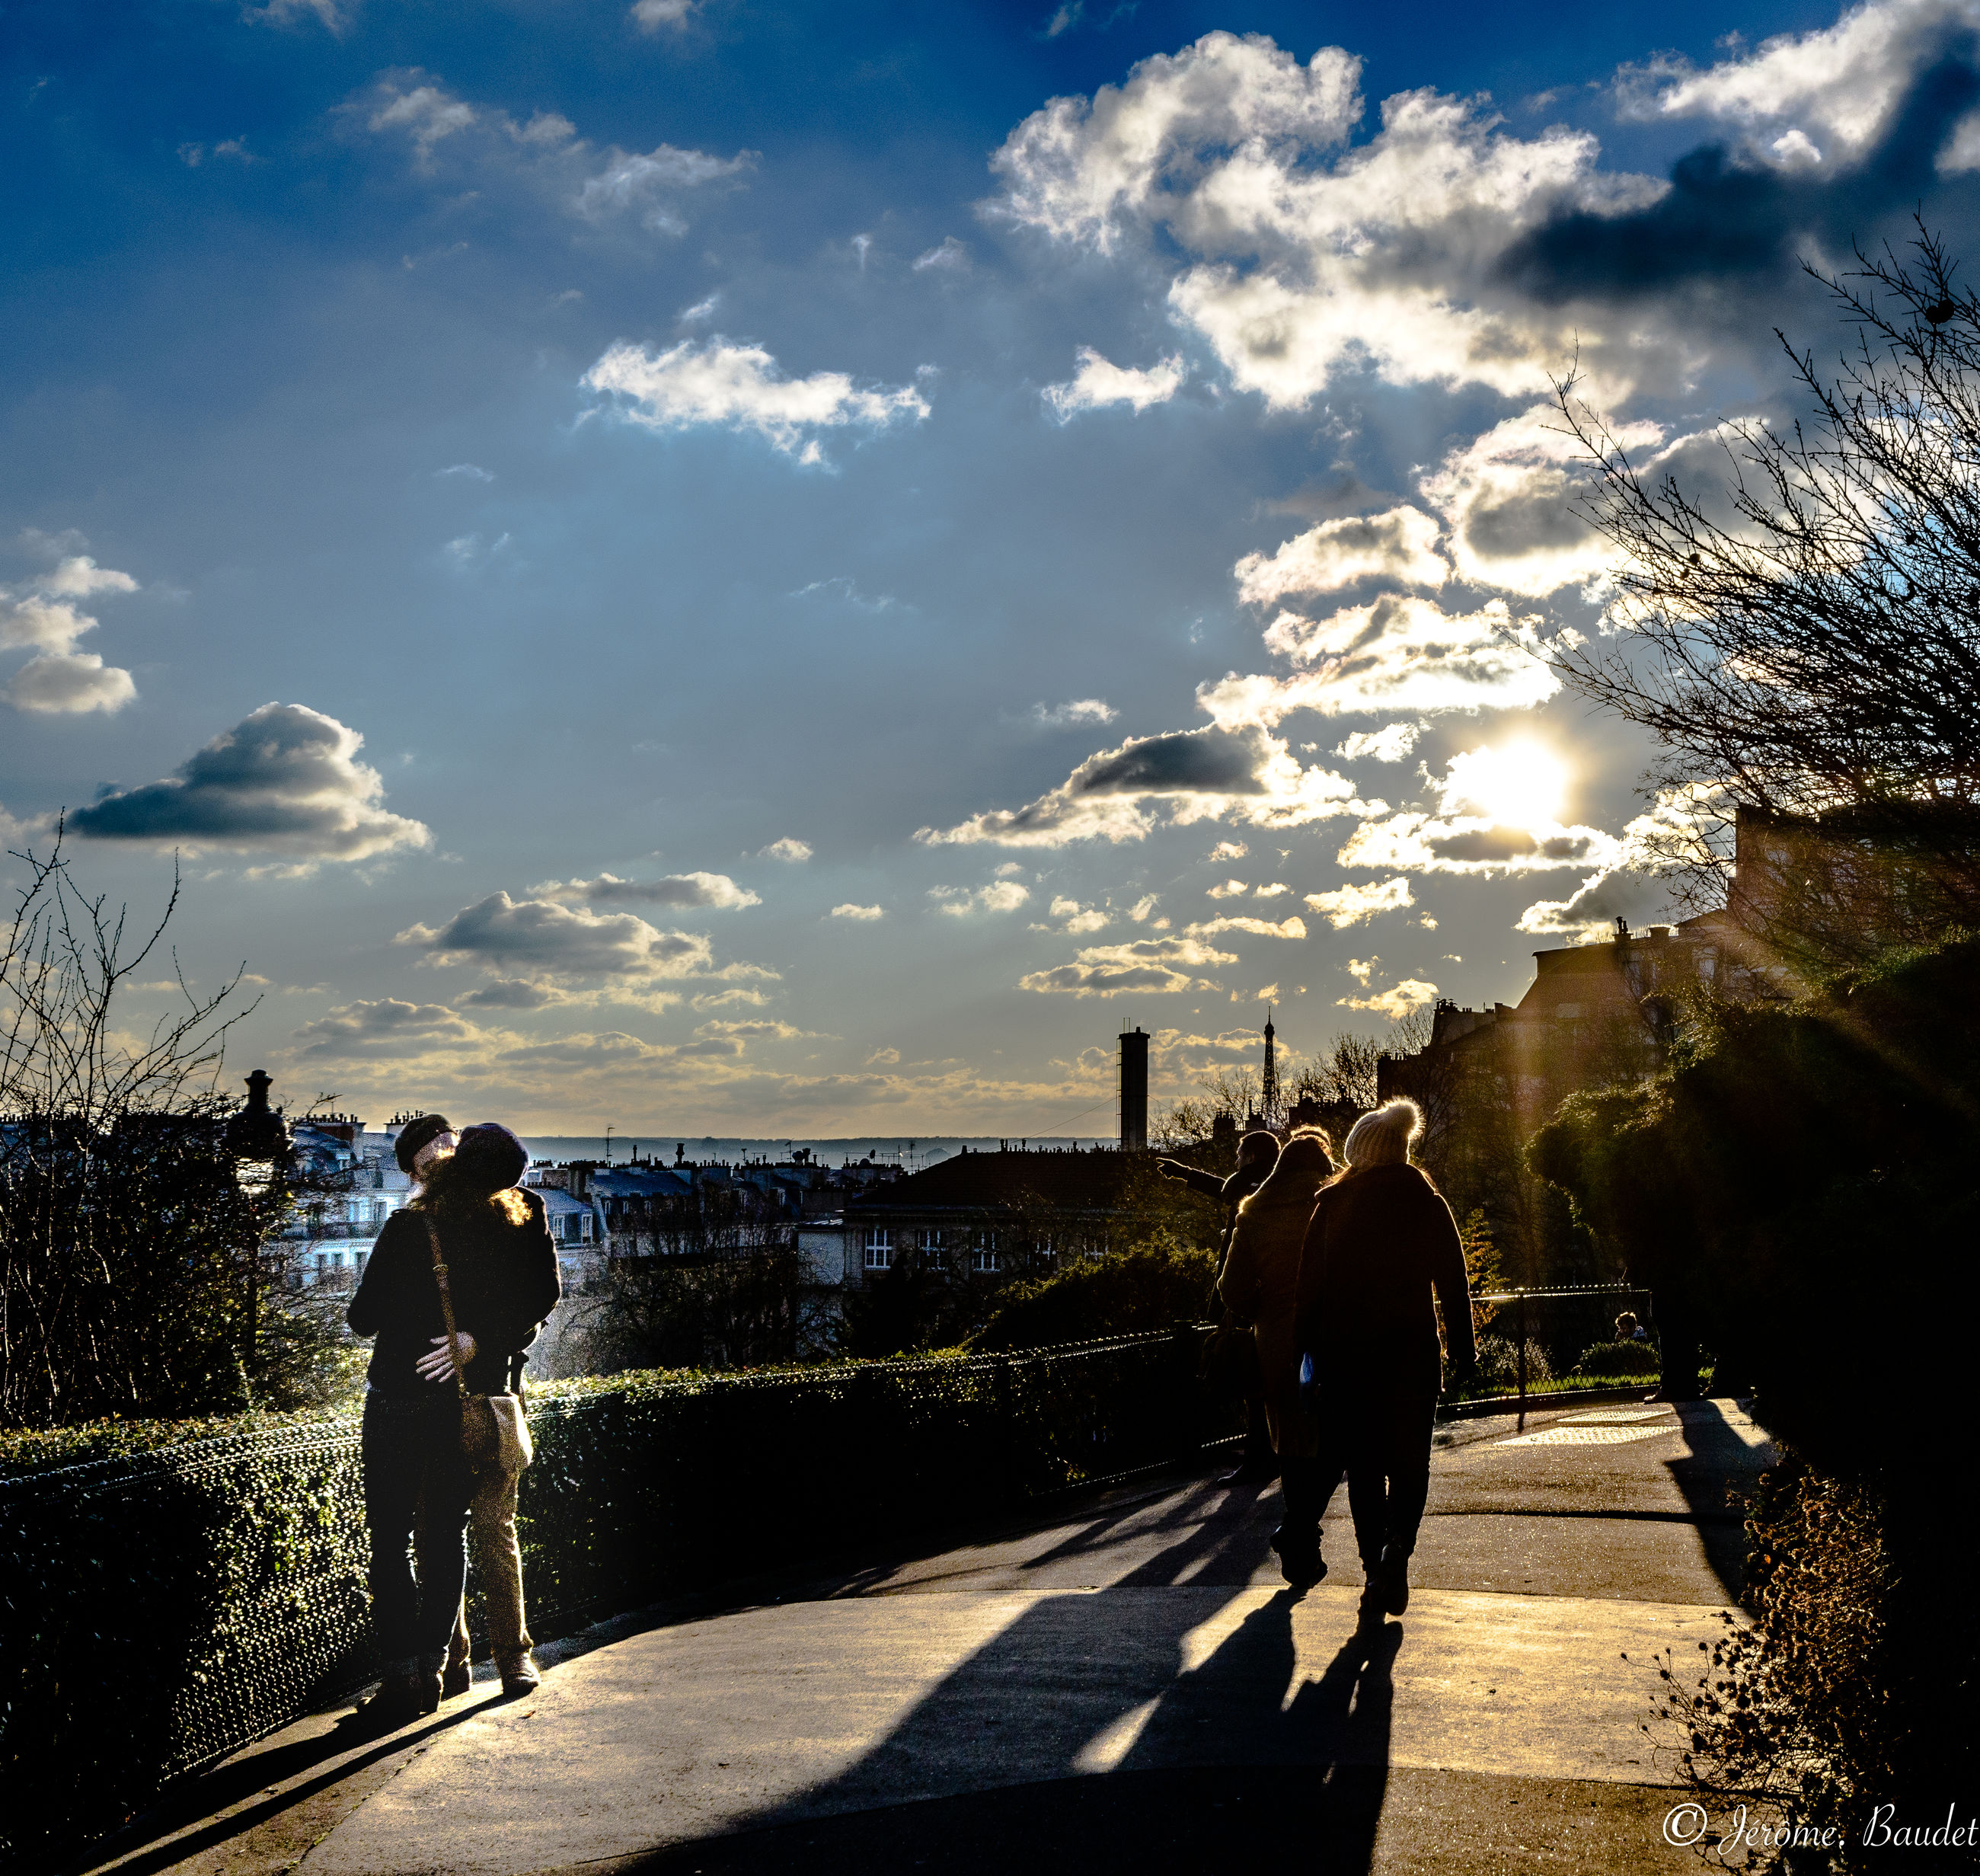 sky, cloud - sky, real people, transportation, sunlight, lifestyles, rear view, walking, group of people, nature, leisure activity, full length, people, men, city, women, road, the way forward, architecture, street, outdoors